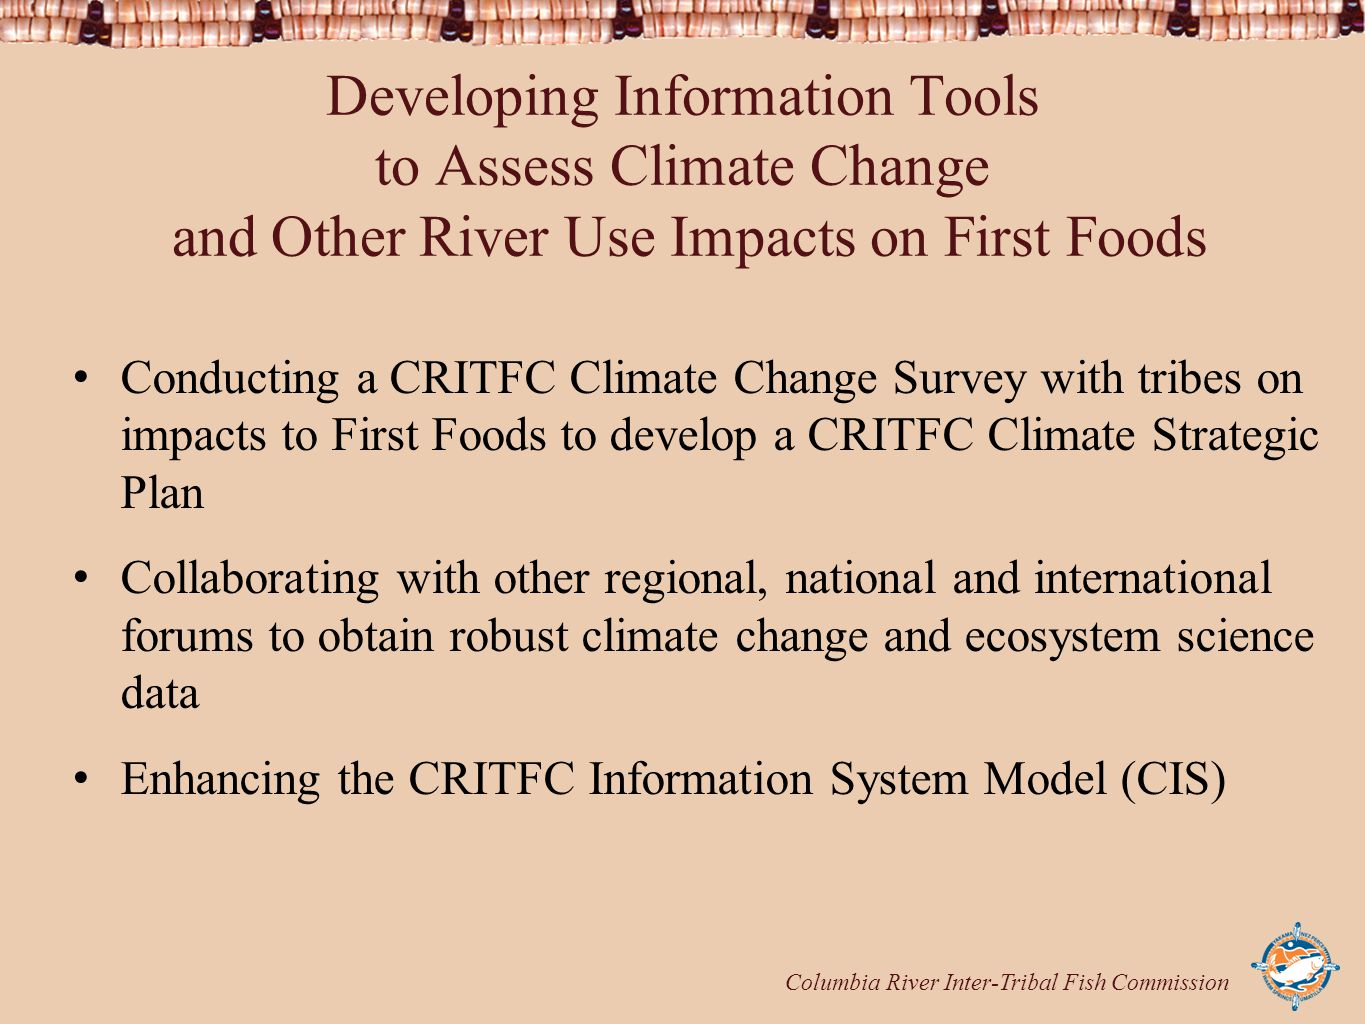 Columbia River Inter-Tribal Fish Commission Developing Information Tools to Assess Climate Change and Other River Use Impacts on First Foods Conductin